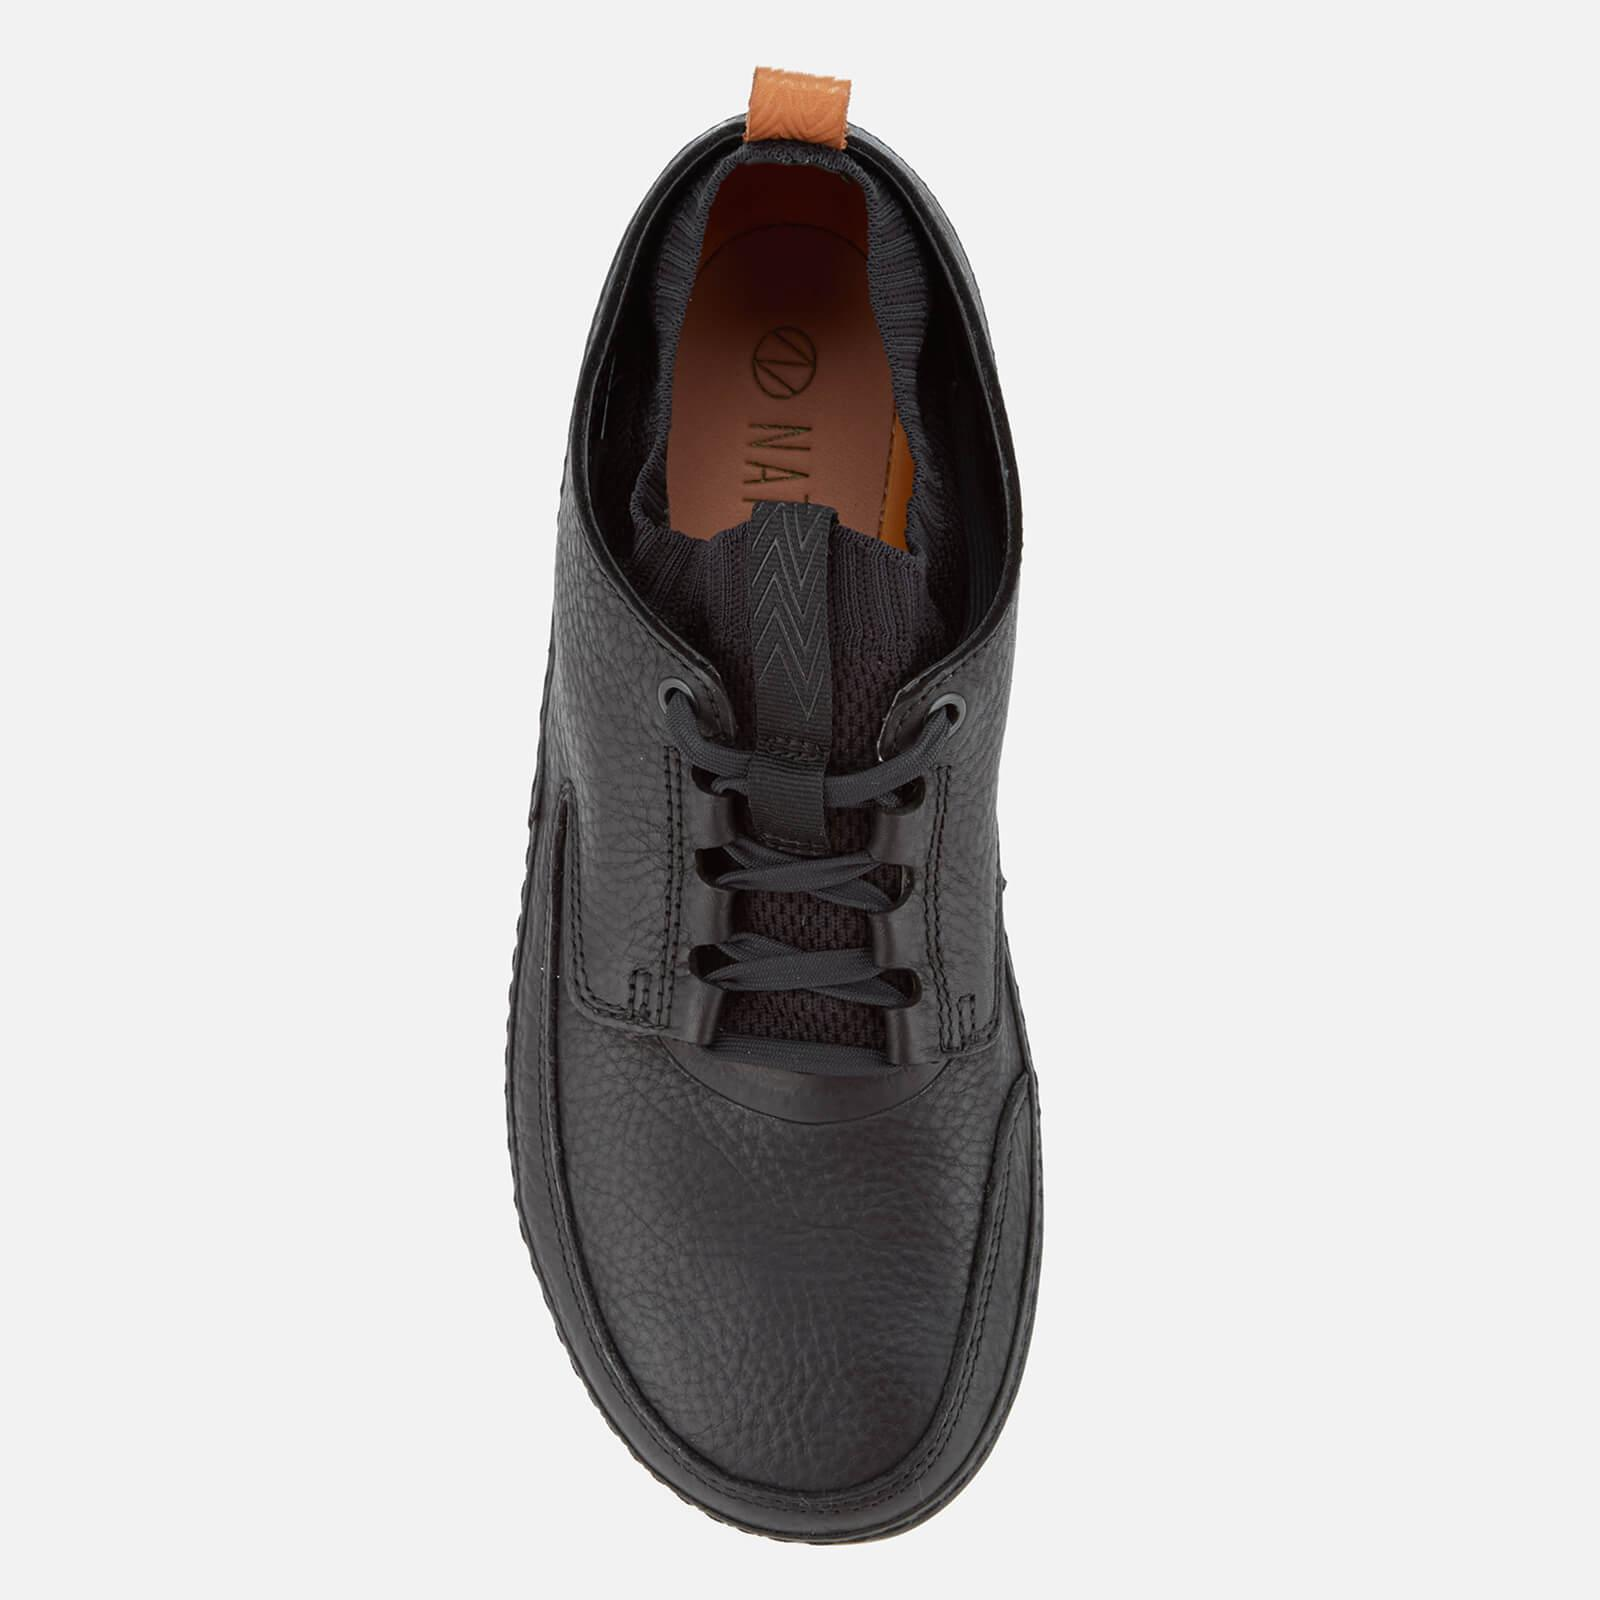 Clarks Men's Nature Iv Leather Lace Up Shoes in Black for Men